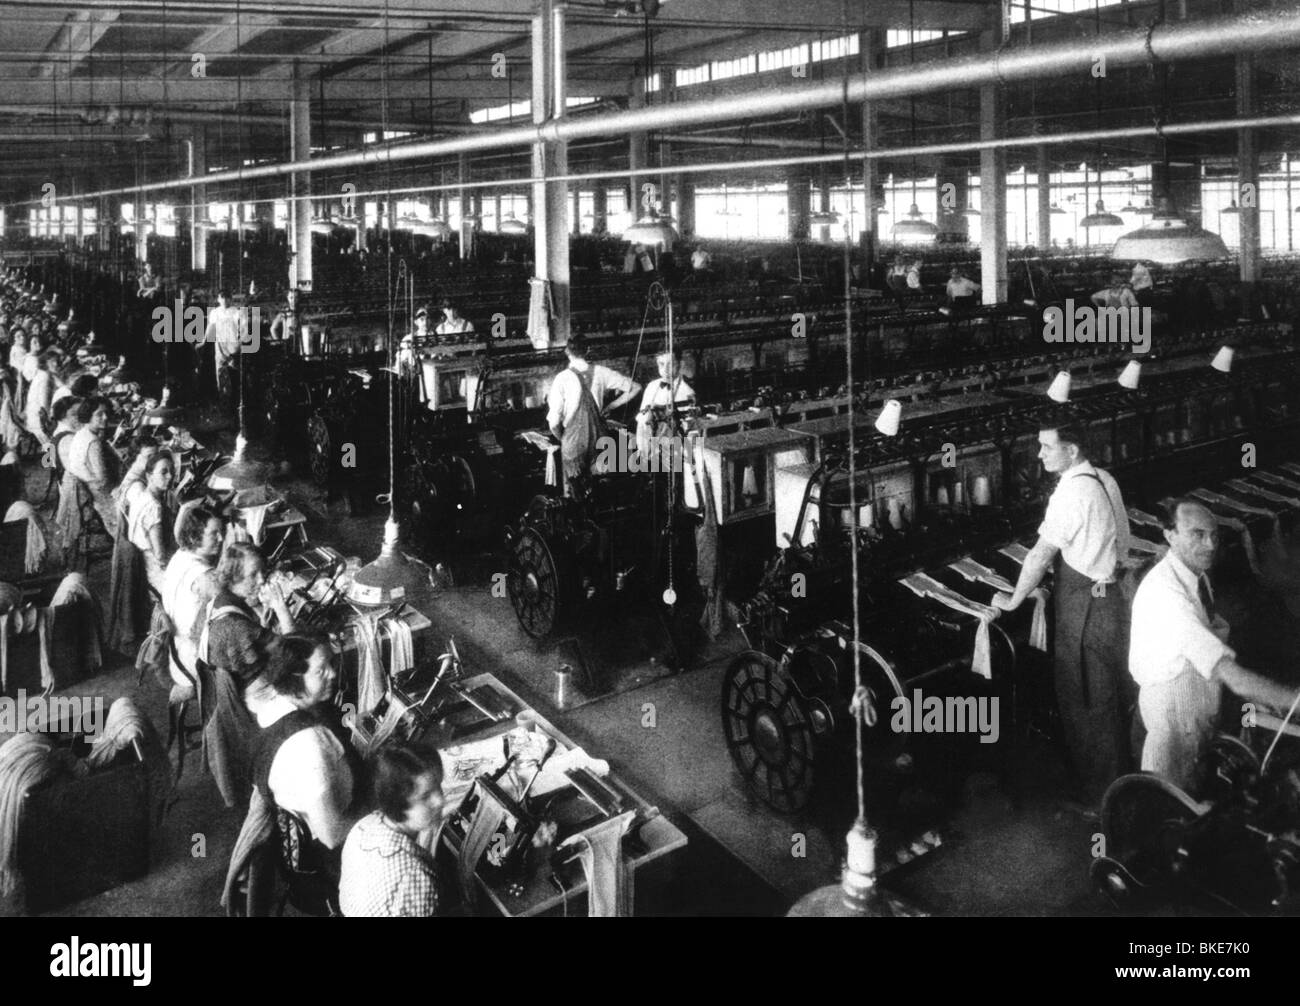 industry, textile industry, weaving mill, circa 1900, Additional-Rights-Clearances-NA - Stock Image